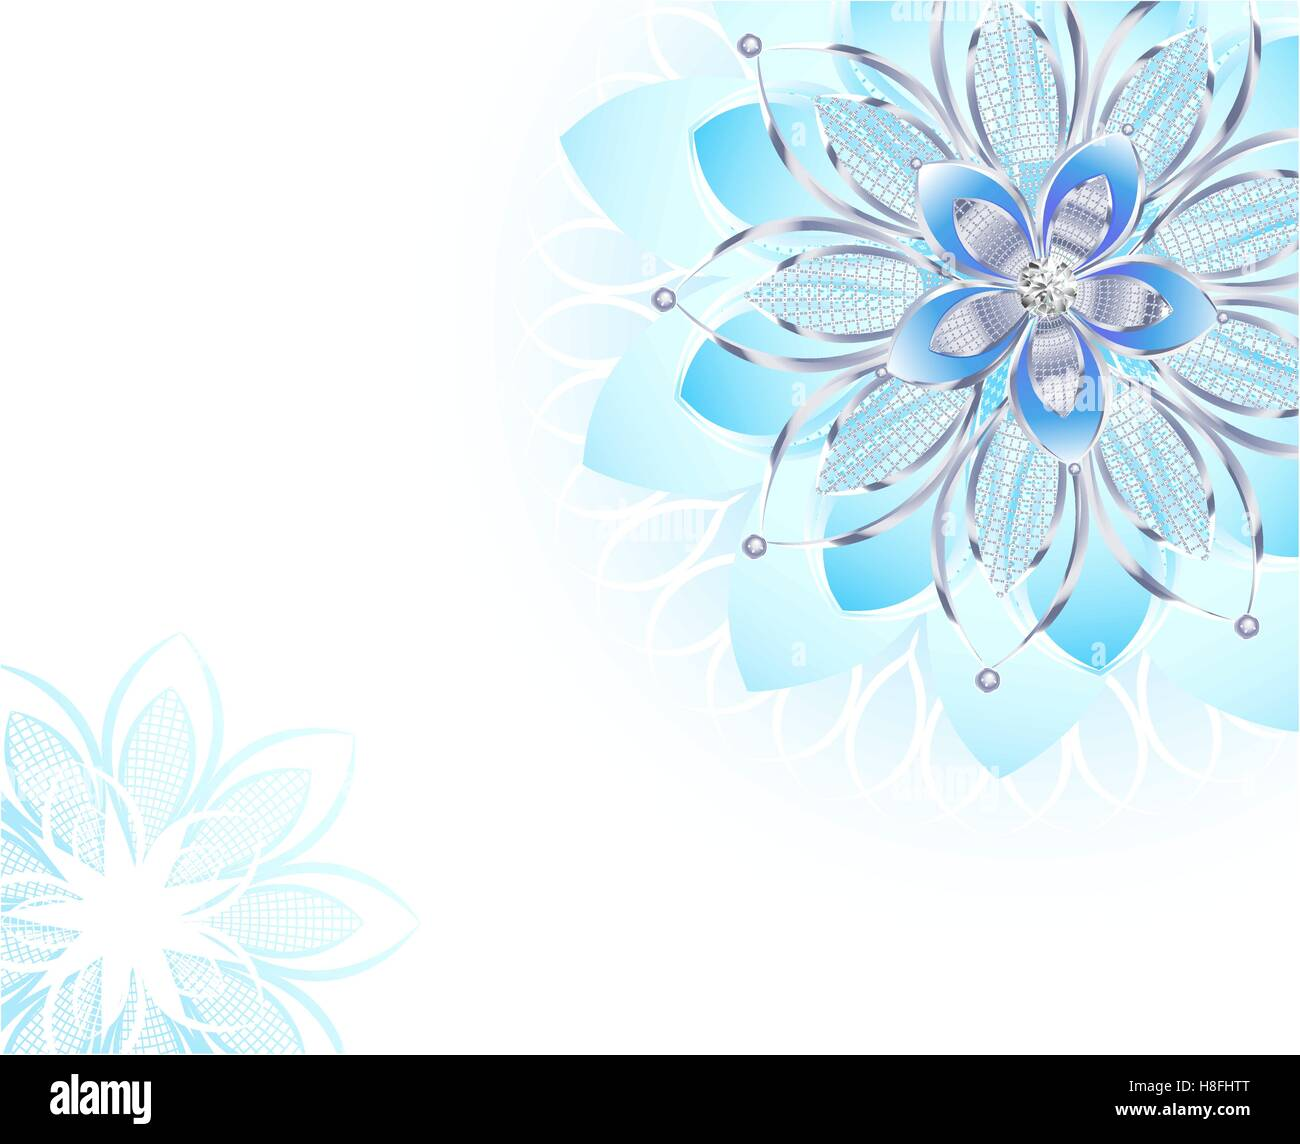 Abstract Light Blue Flower Jewelry From Sparkling Silver On A White Background